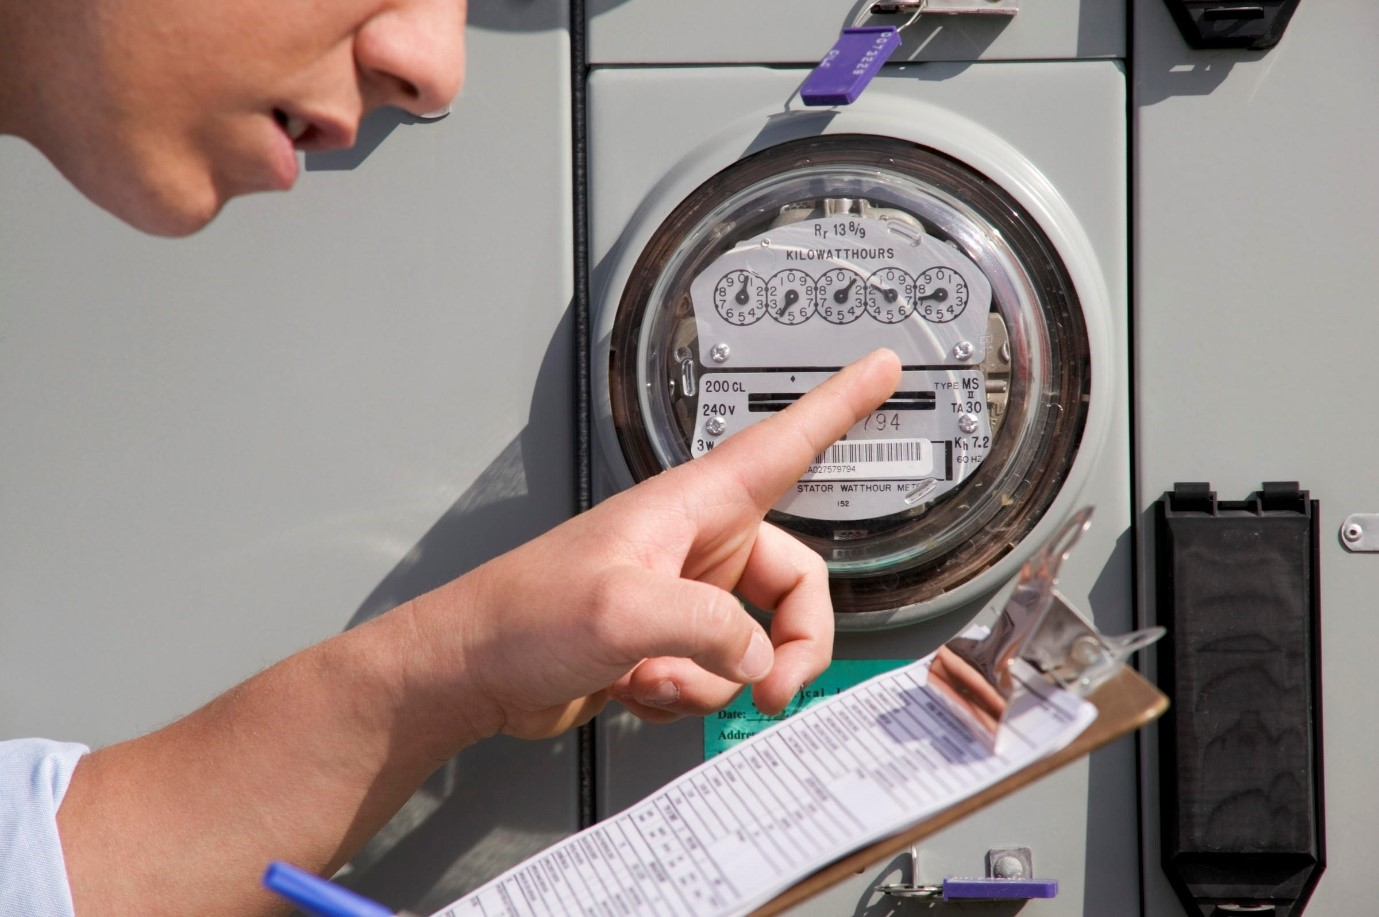 Who is responsible for repairing your gas meter box?